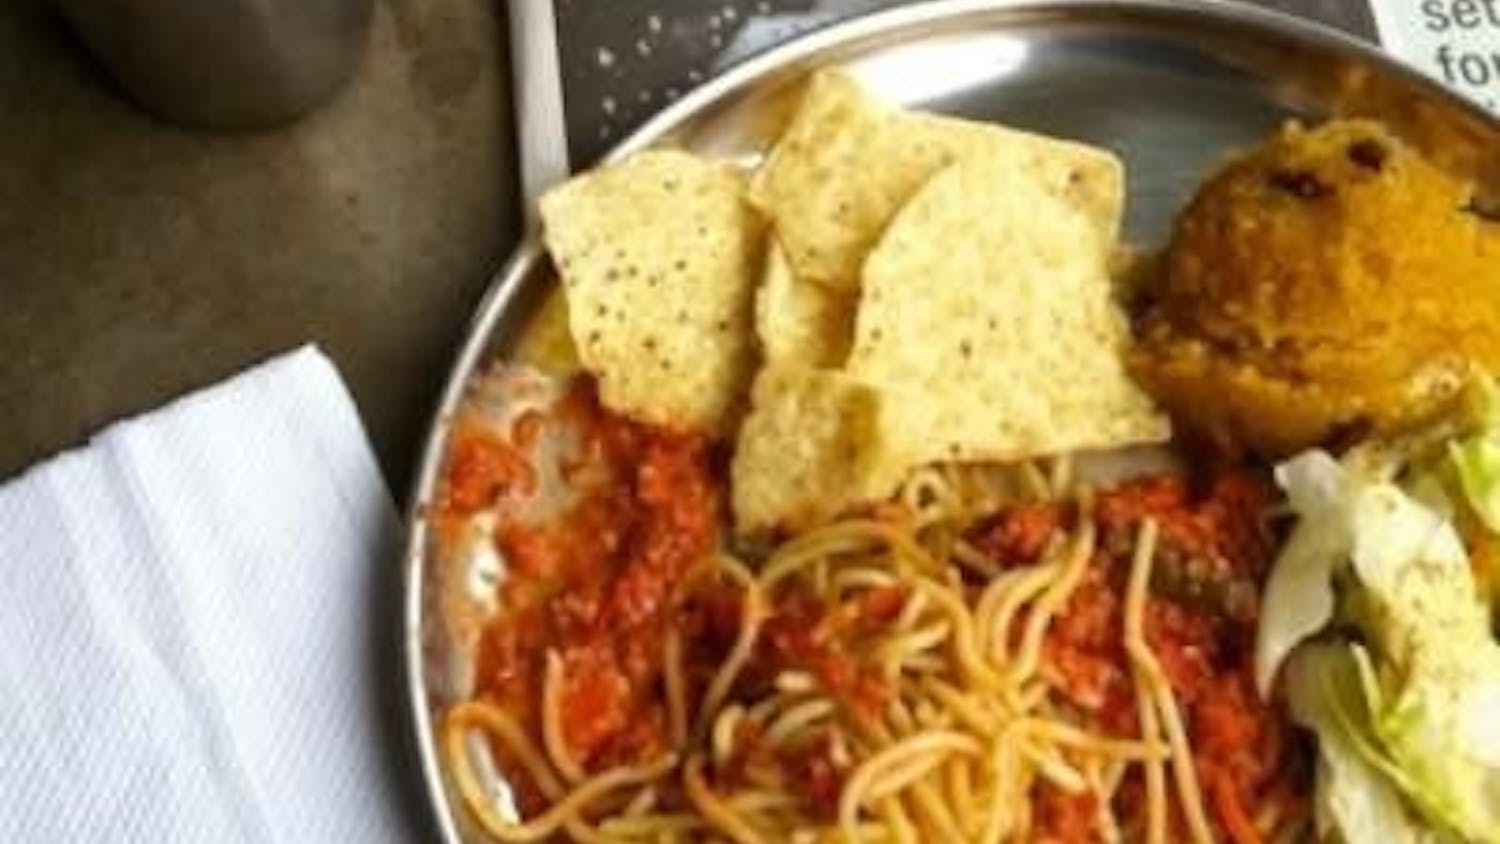 Spaghetti Wednesdays are gone. Hare Krishna is responding to numerous student complaints that the iconic Wednesday meal was hard to eat, by changing to an easier pasta meal.